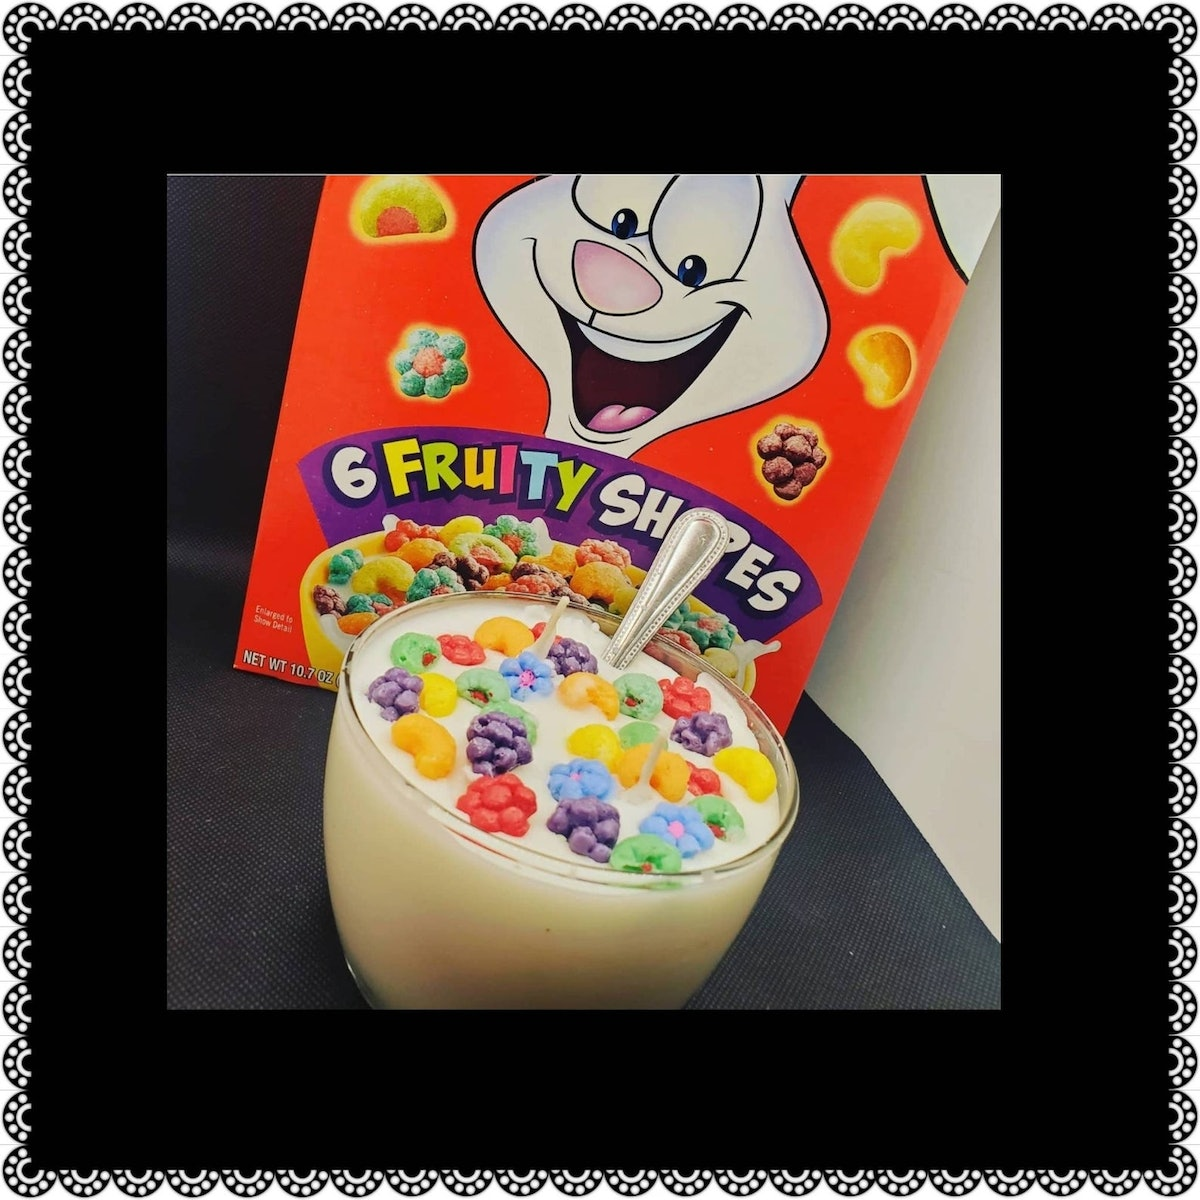 TRIX Cereal Bowl Candle